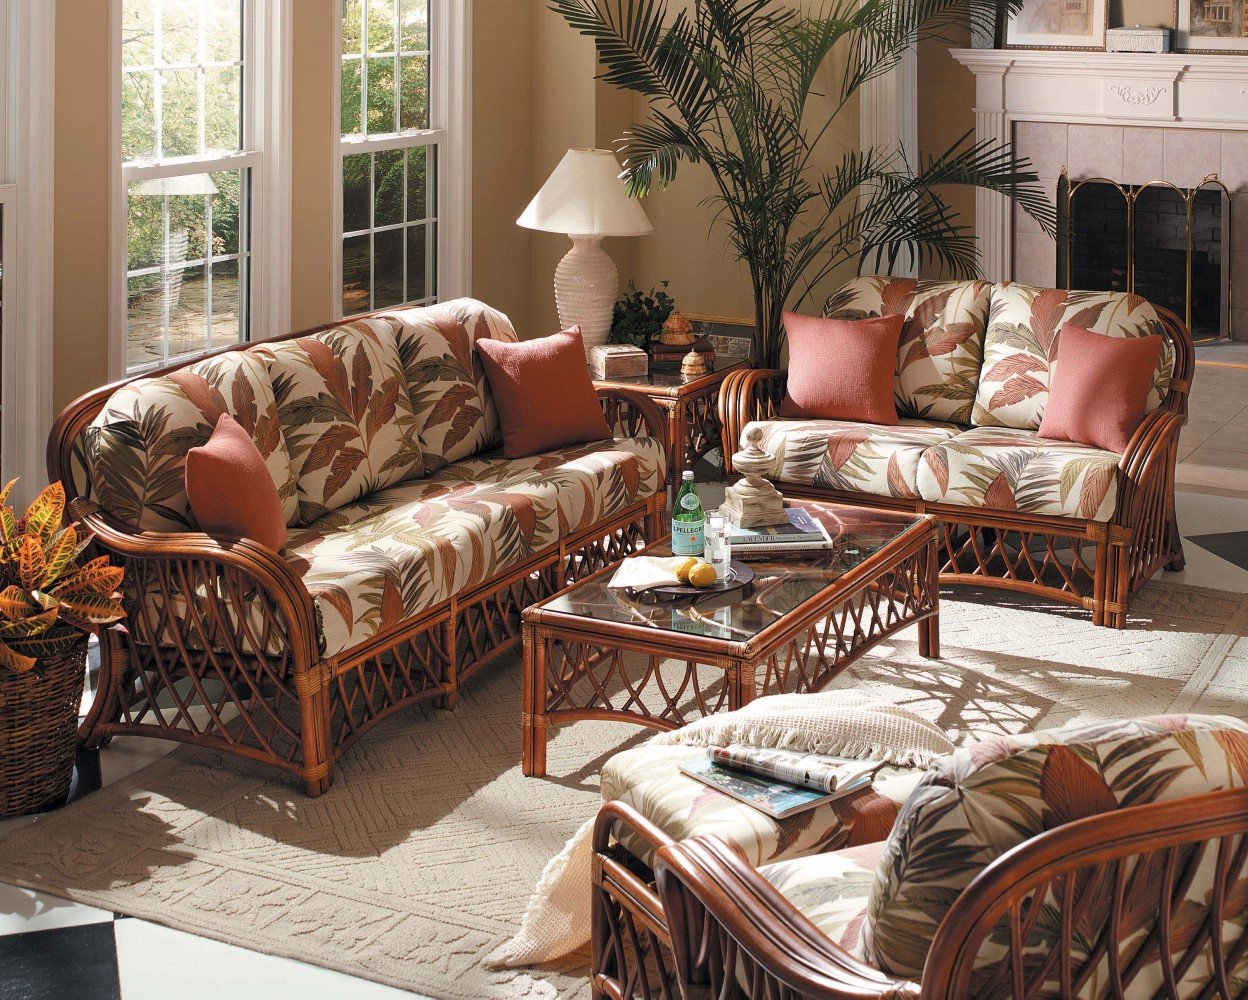 The living room is one of the most important areas in your house for a great hosting experience. South Sea Rattan Antigua Indoor Living Room Set - Modern ...